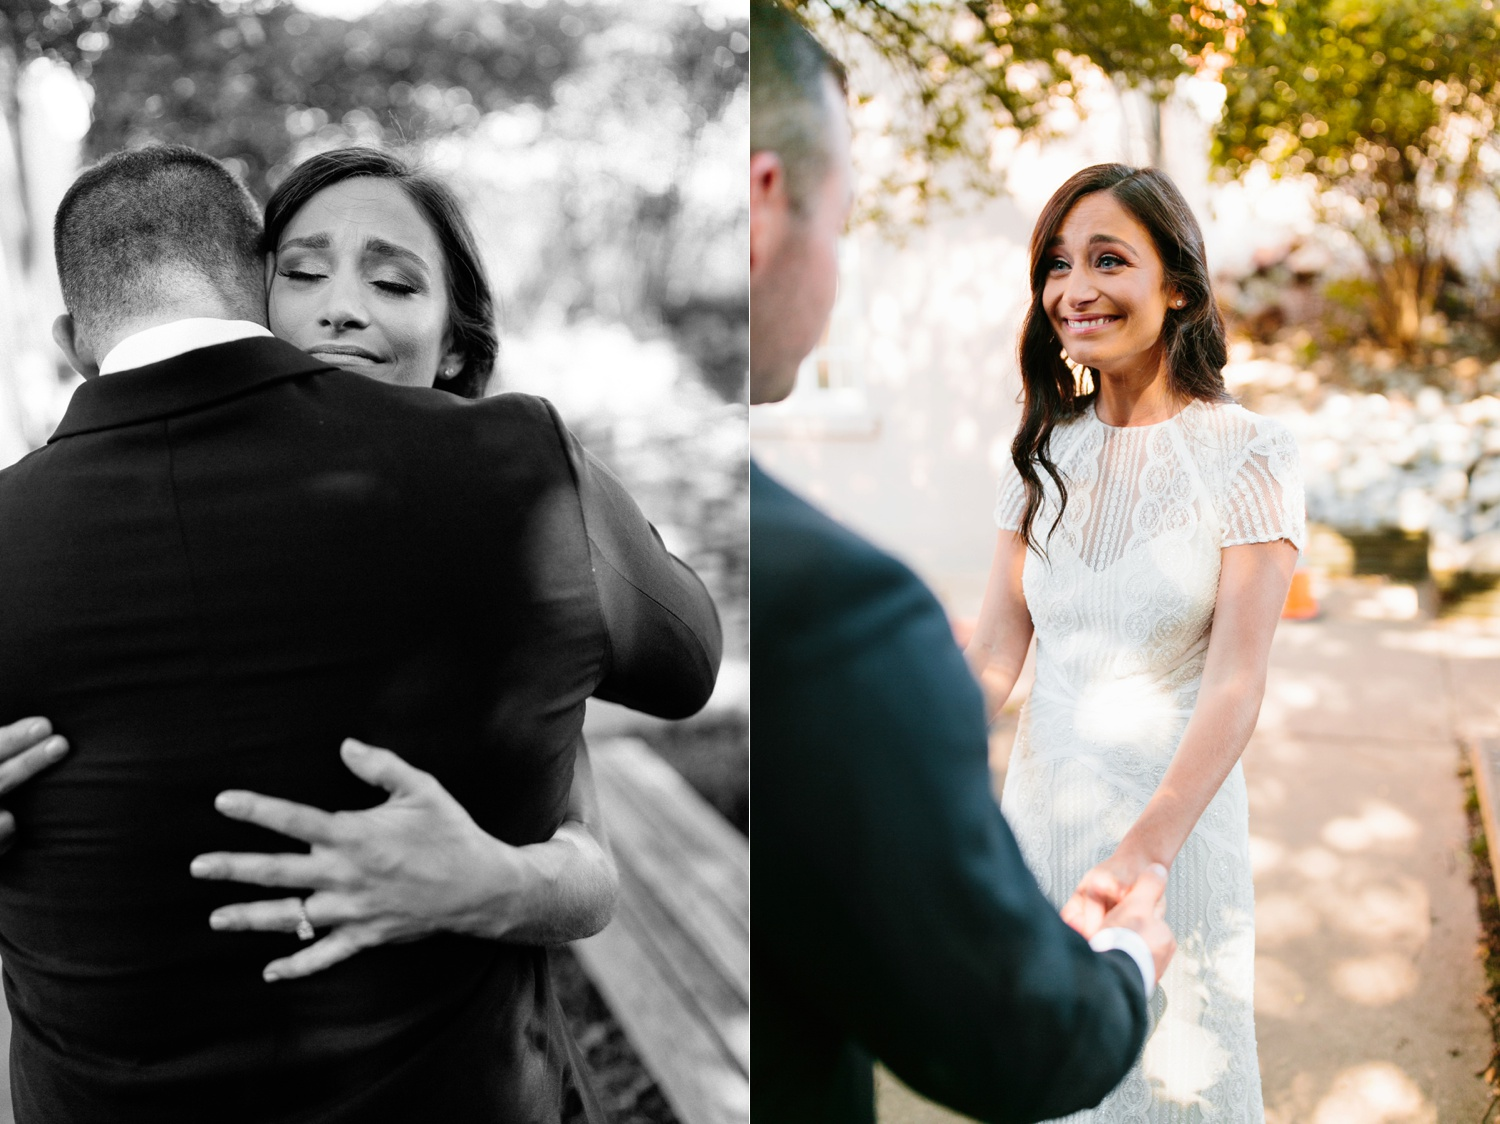 Kadee + Tyler | a raw, emotional wedding at the Filter Building on White Rock Lake in Dallas, TX by North Texas Wedding Photographer, Rachel Meagan Photography 068